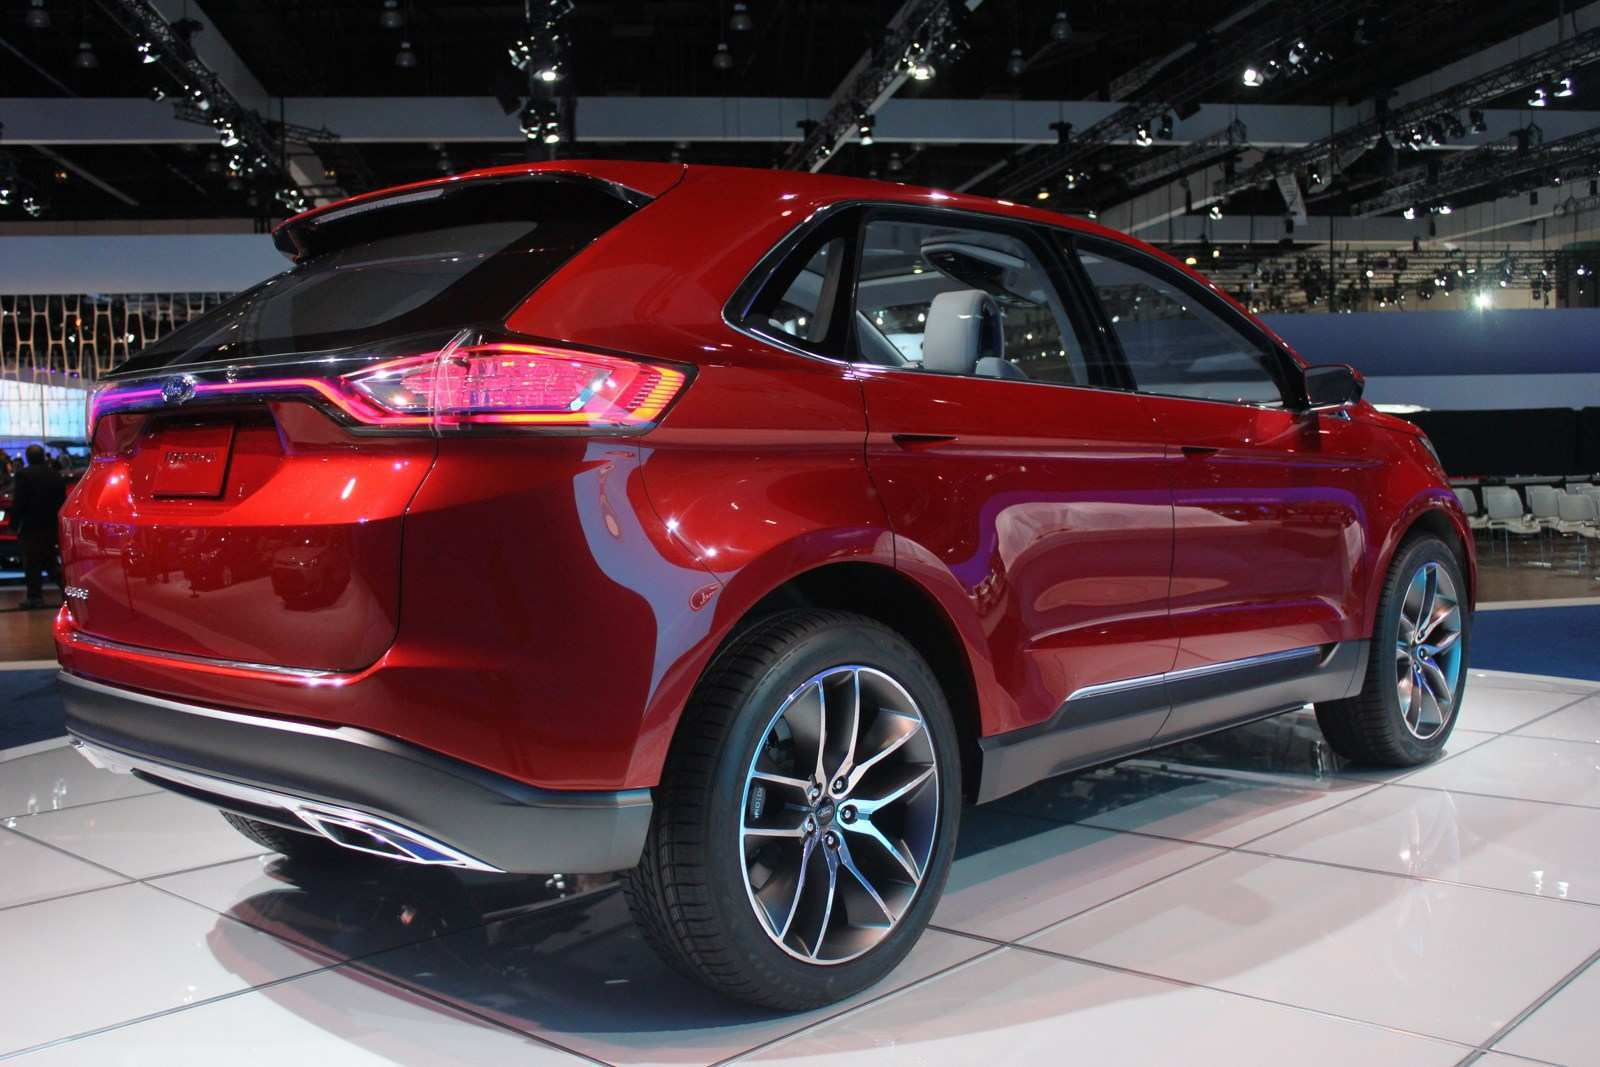 92 A Ford Edge New Design New Review